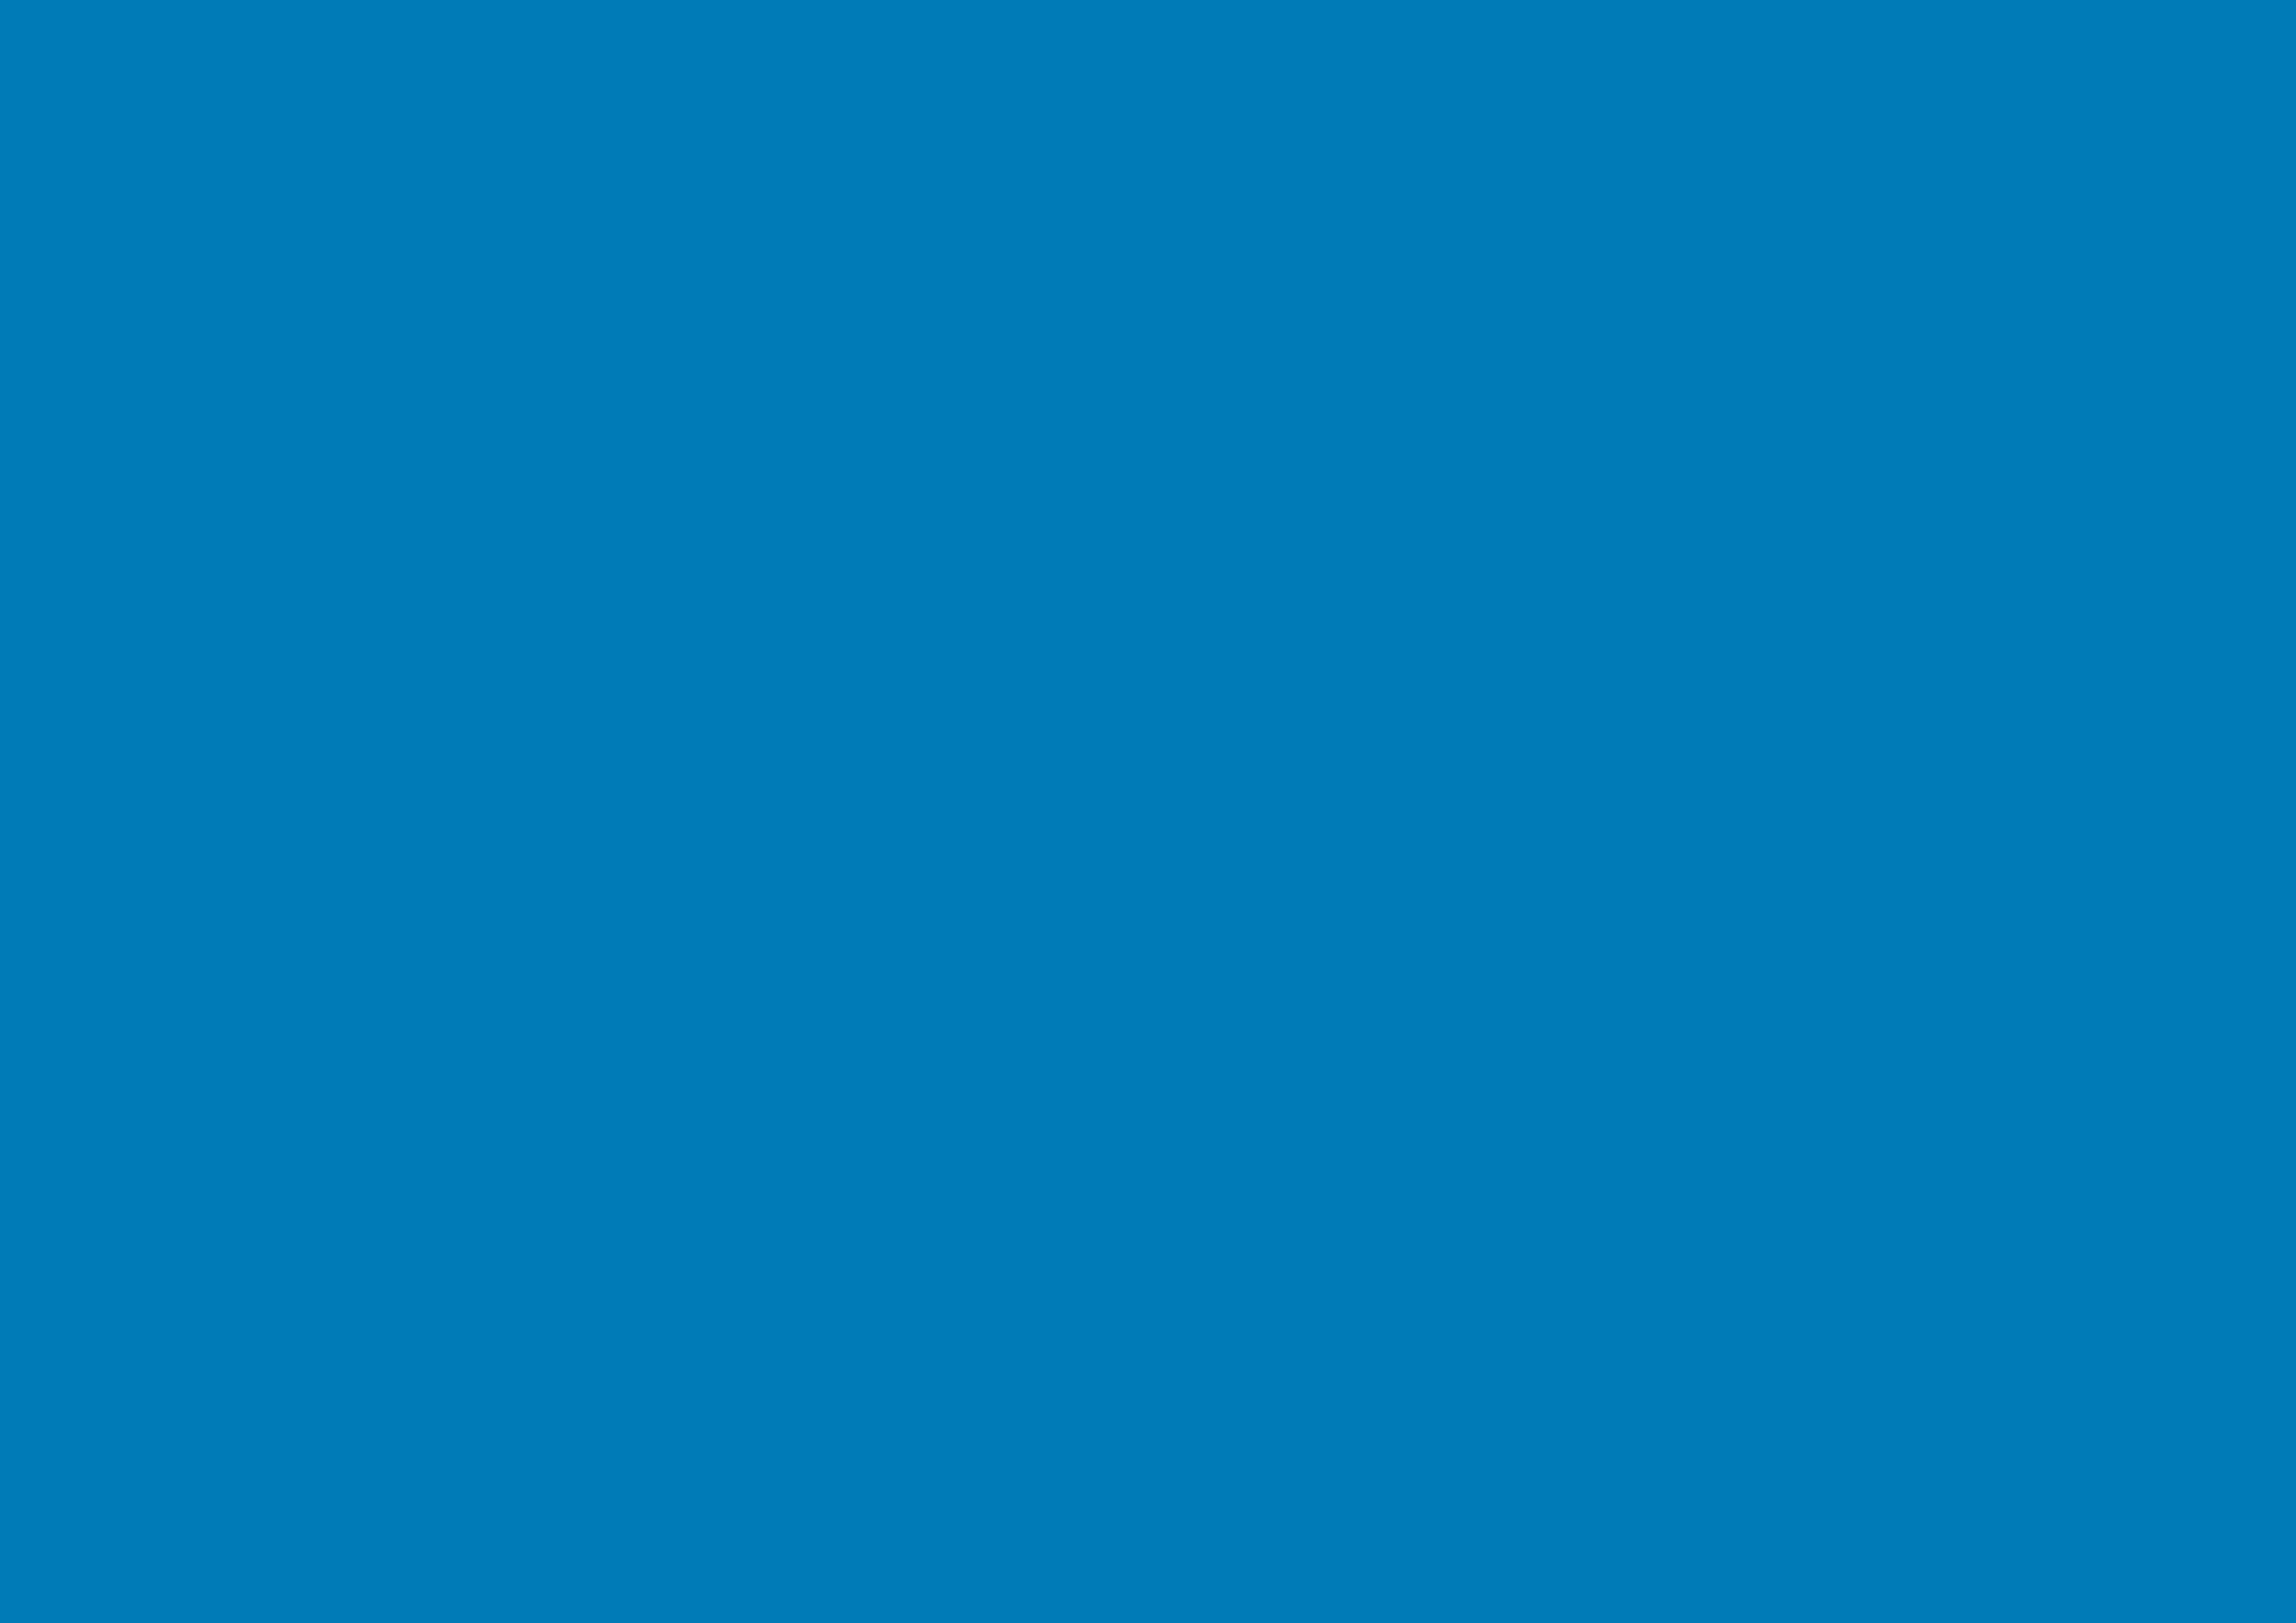 3508x2480 Star Command Blue Solid Color Background